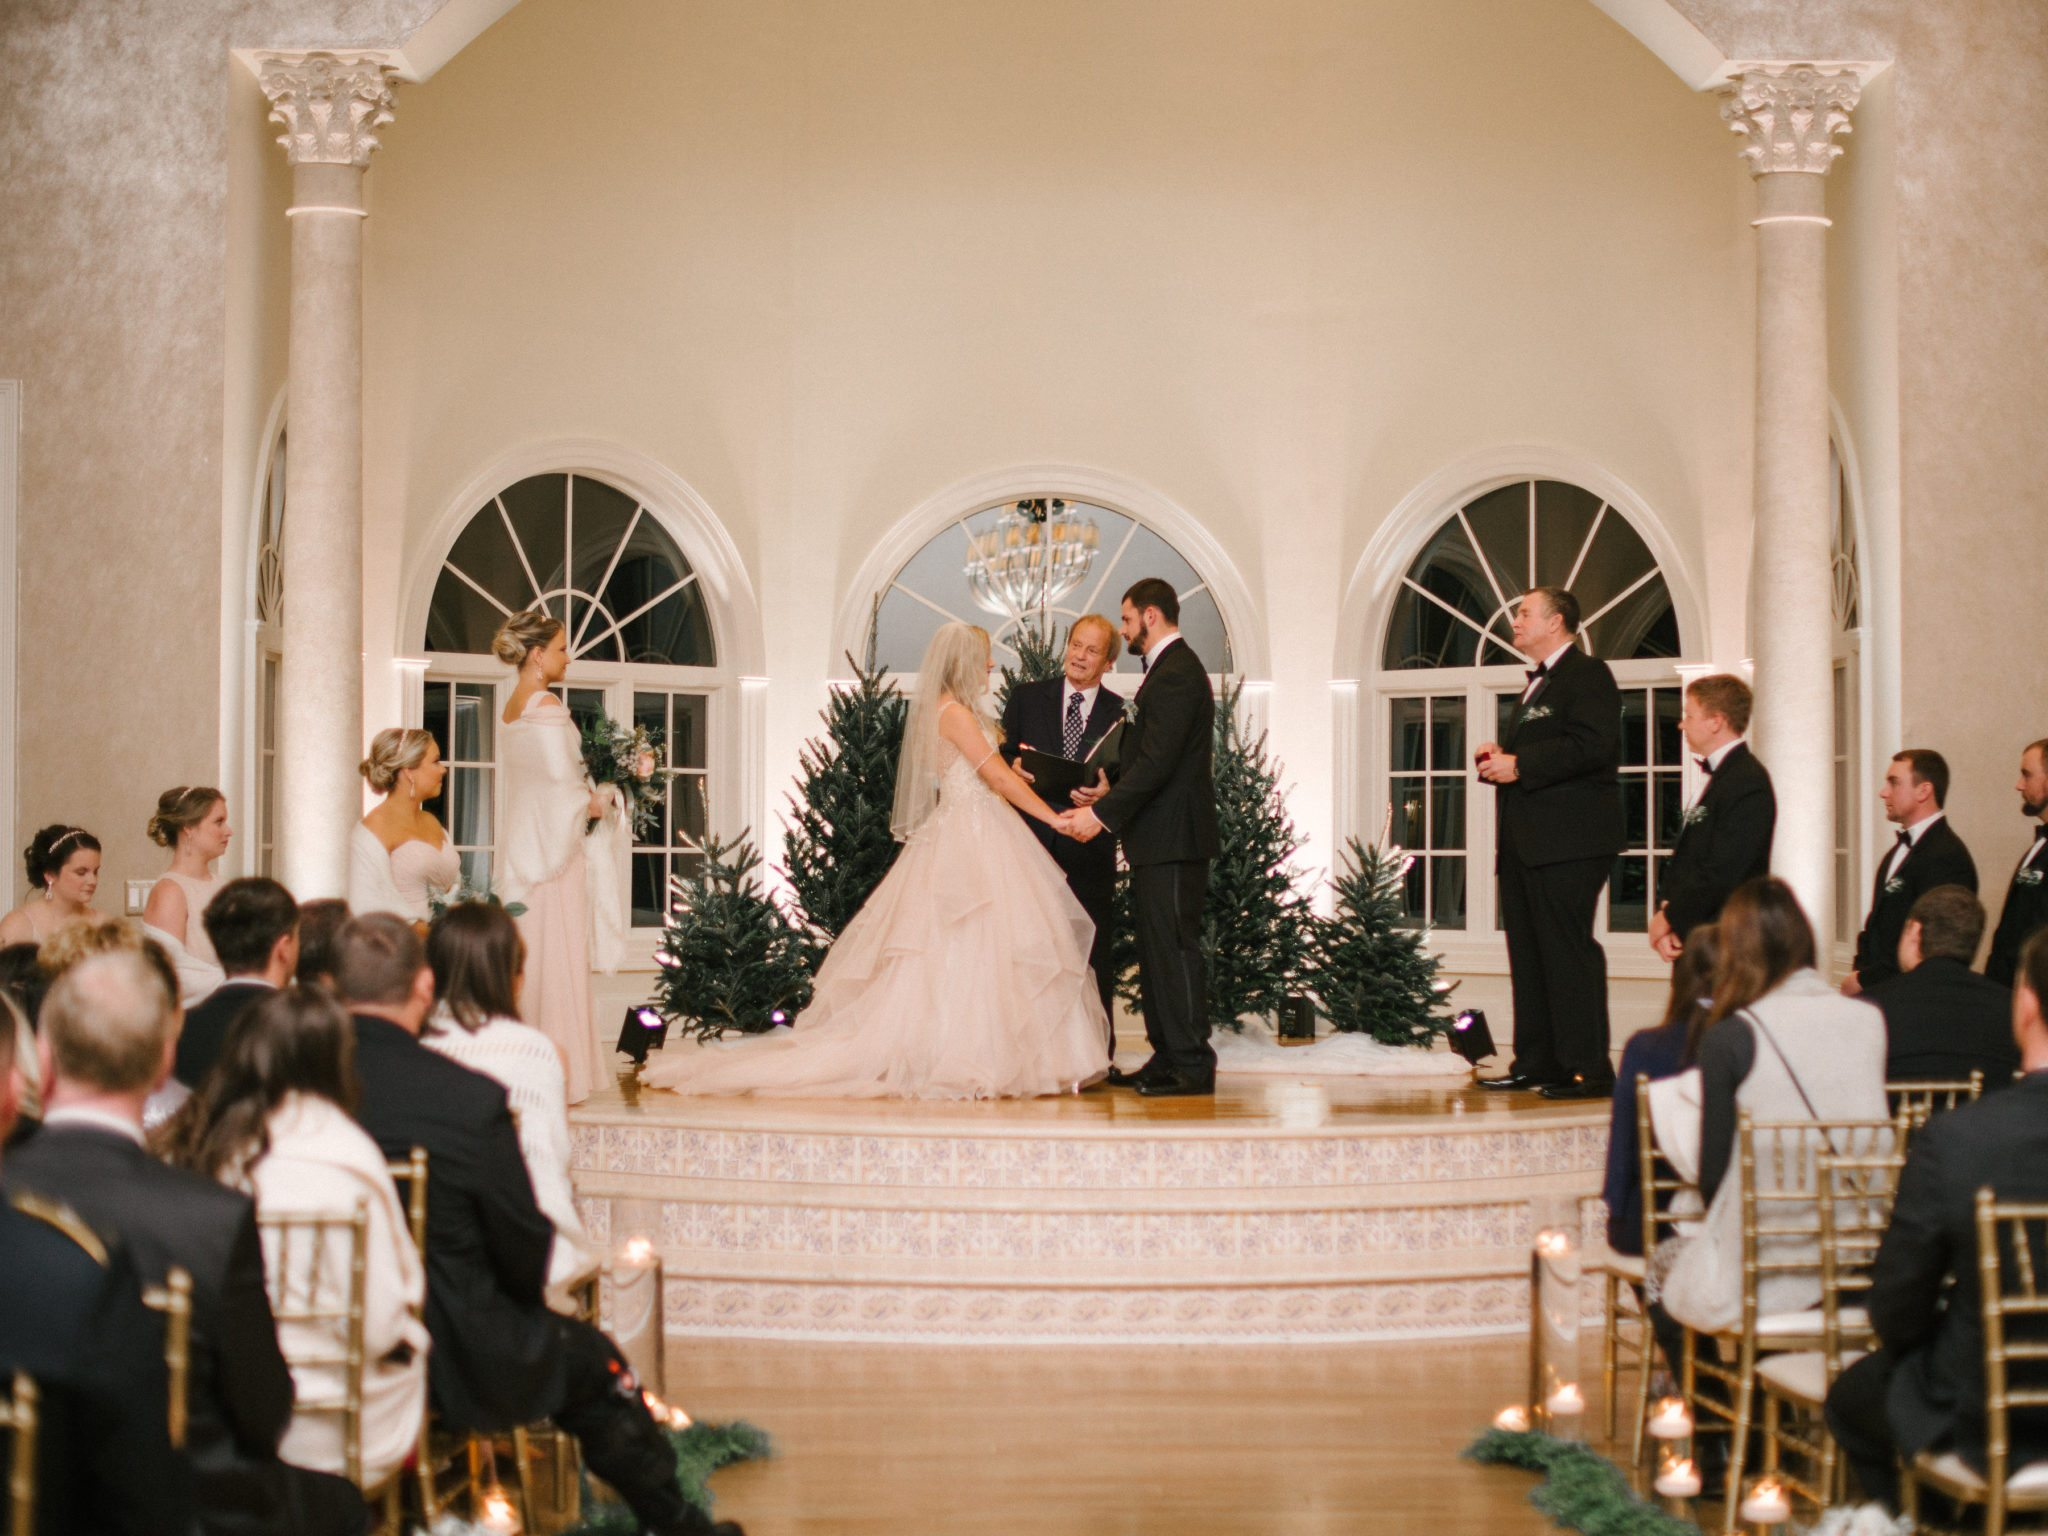 KimStockwellAshleyandMattMoraisVIneyardWedding273 Winter Weddings - A Snow Fairy Tale